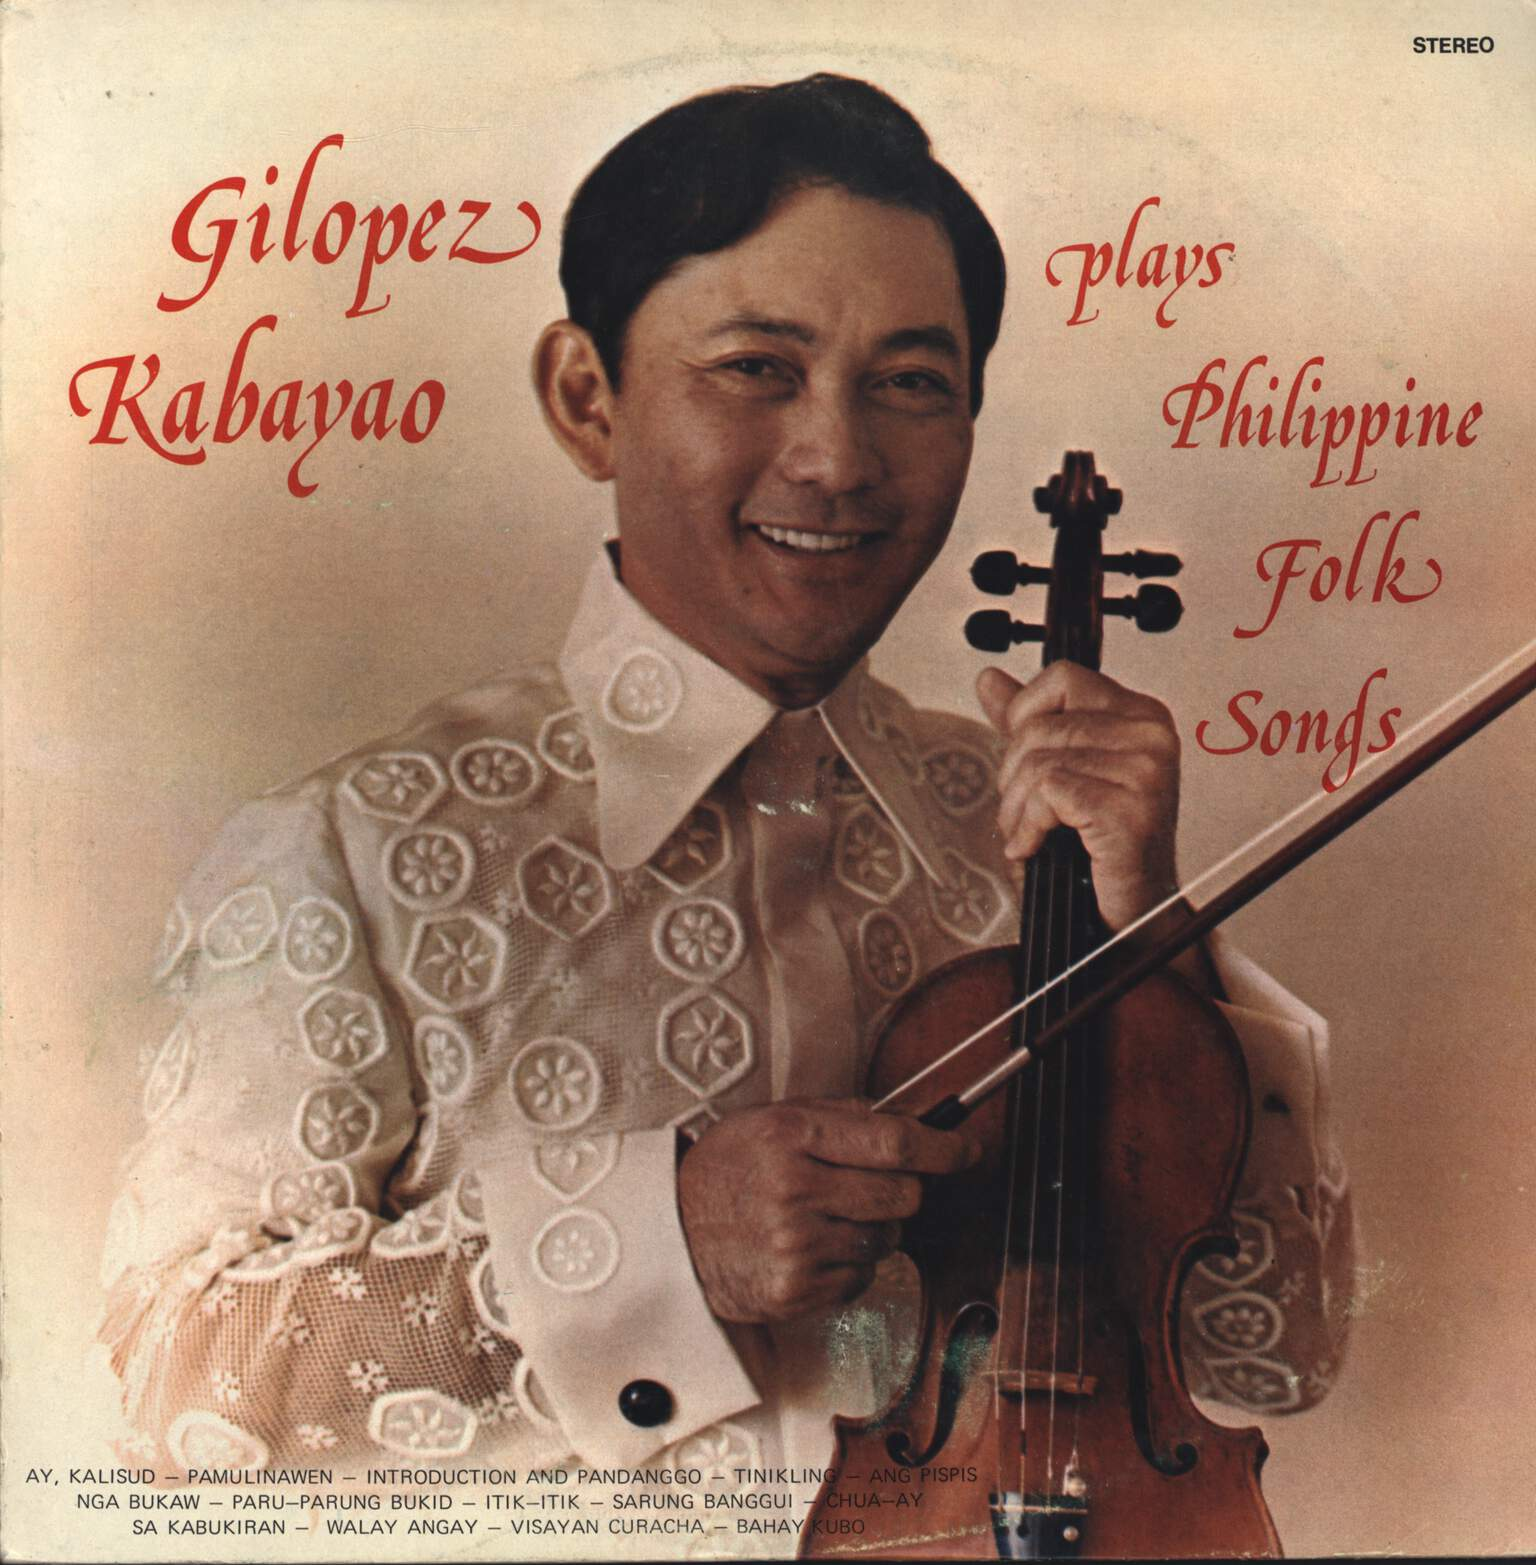 Gilopez Kabayao: Gilopez Kabayao Plays Philippine Folk Songs, LP (Vinyl)